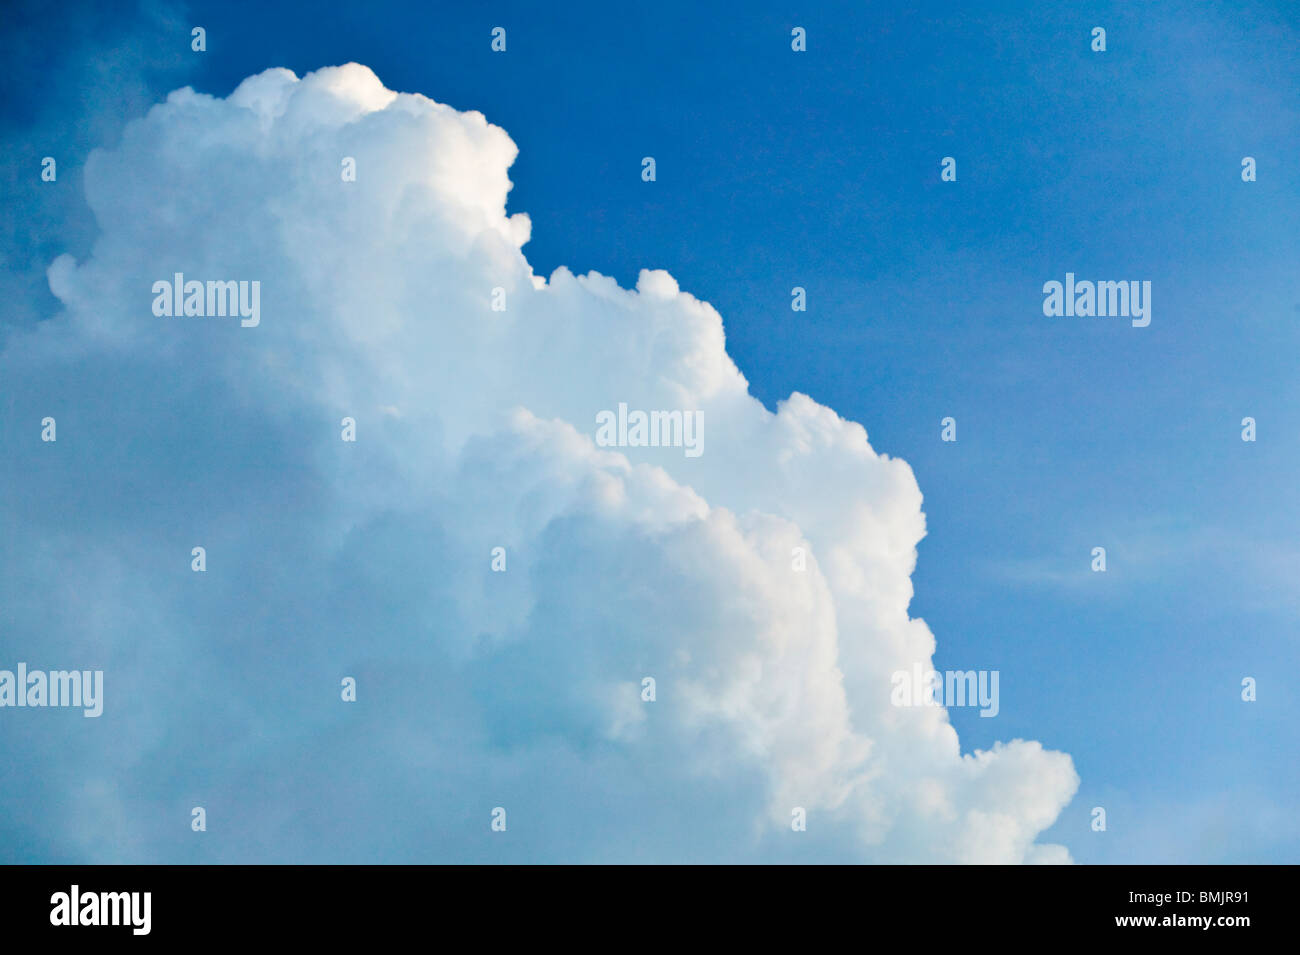 White clouds and a blue sky - Stock Image